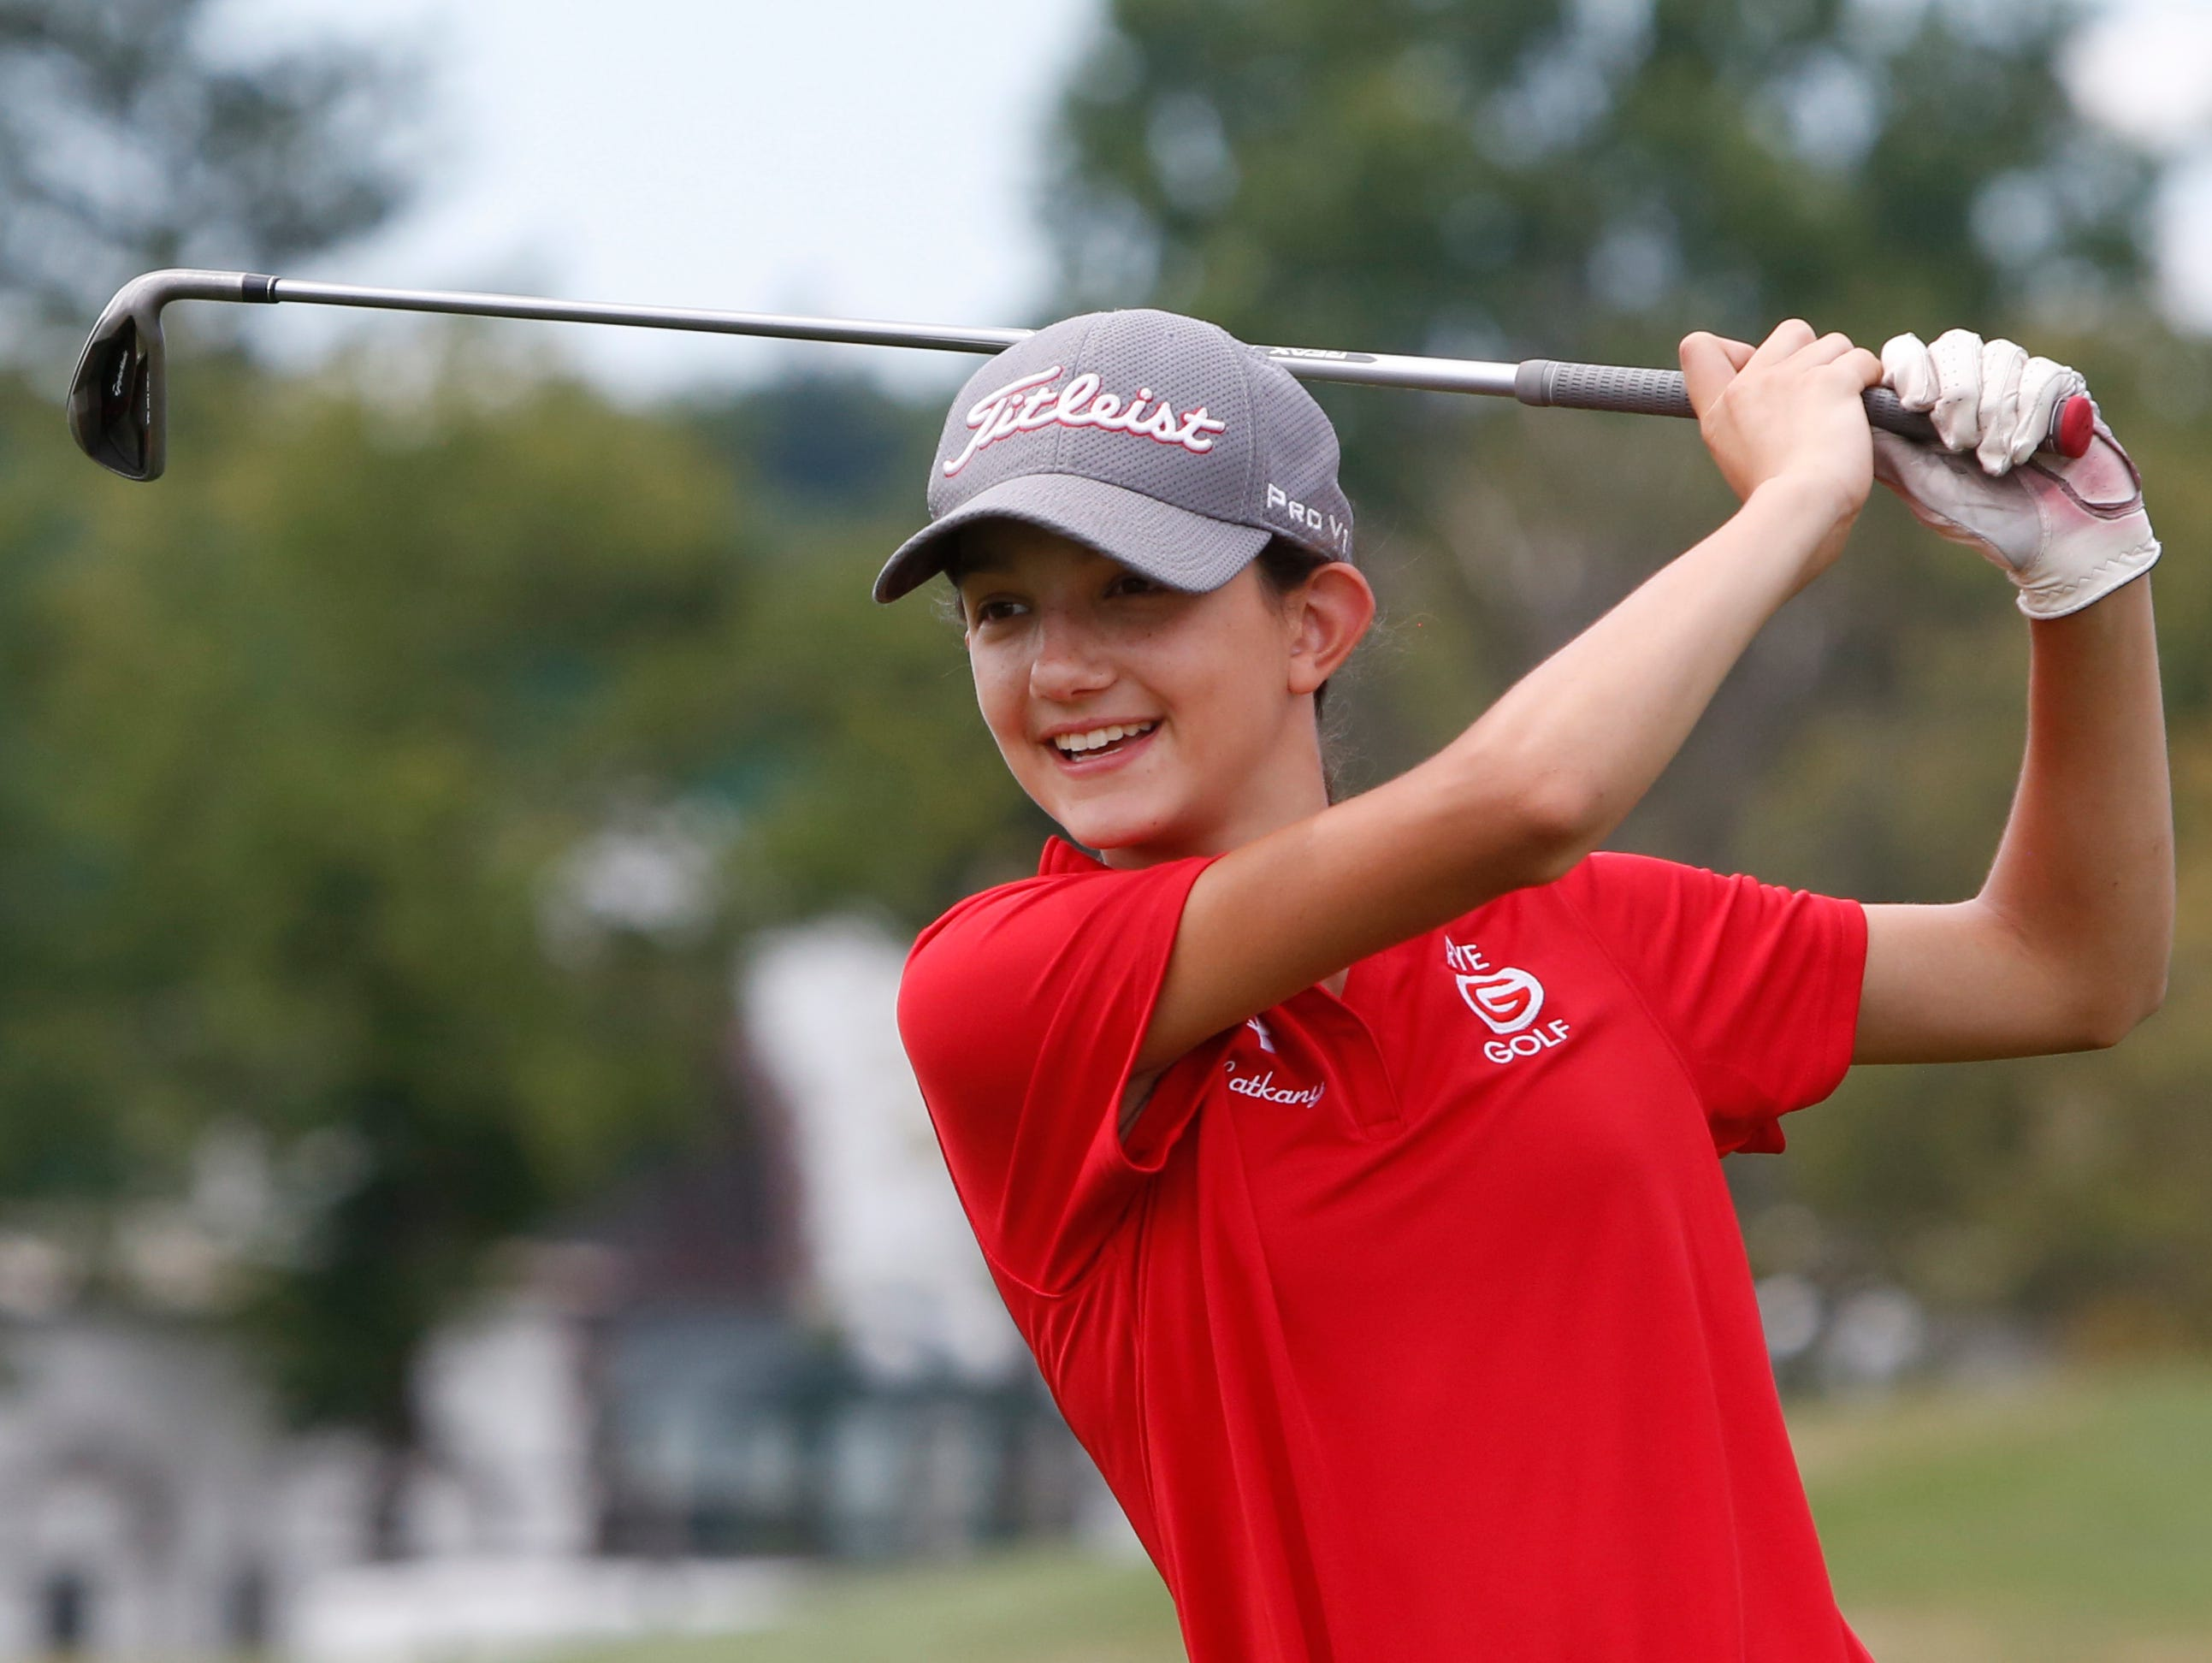 Amanda Latkany, 13, of Rye practices her swing at the Girls to the Tee event put on by the Women's Metropolitan Golf Association at Westchester Country Club in Rye, Aug. 8, 2016. The free clinic, for girls ages 6-18, is an afternoon of instruction and networking to help show girls who are learning the game that they are part of a larger group.